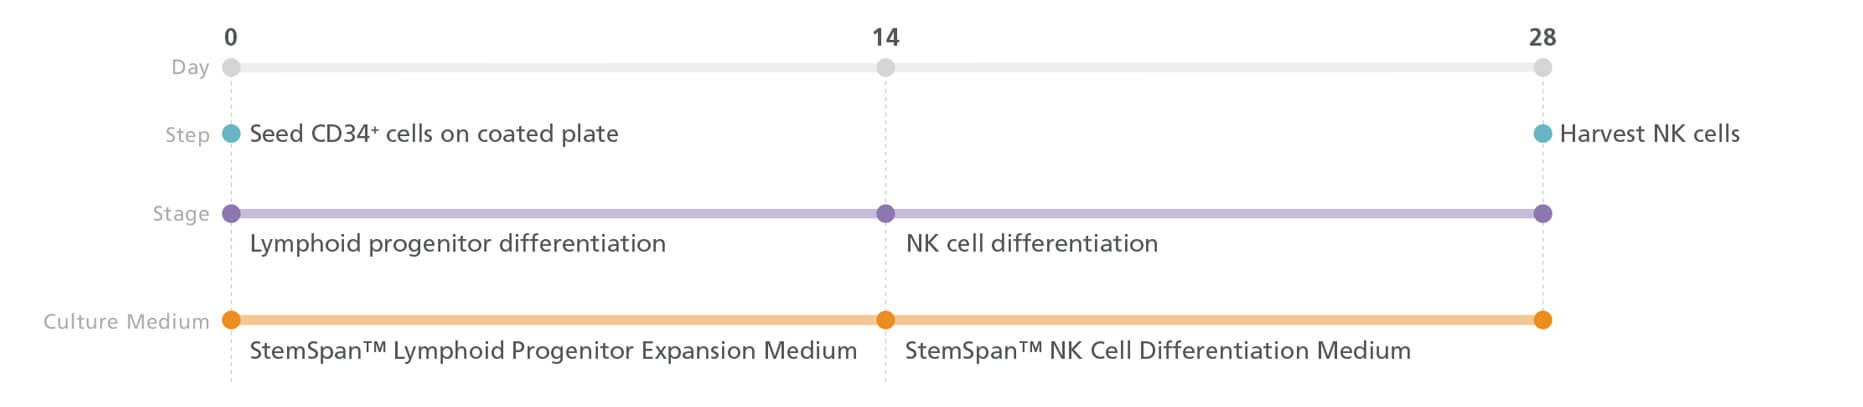 NK cell generation protocol